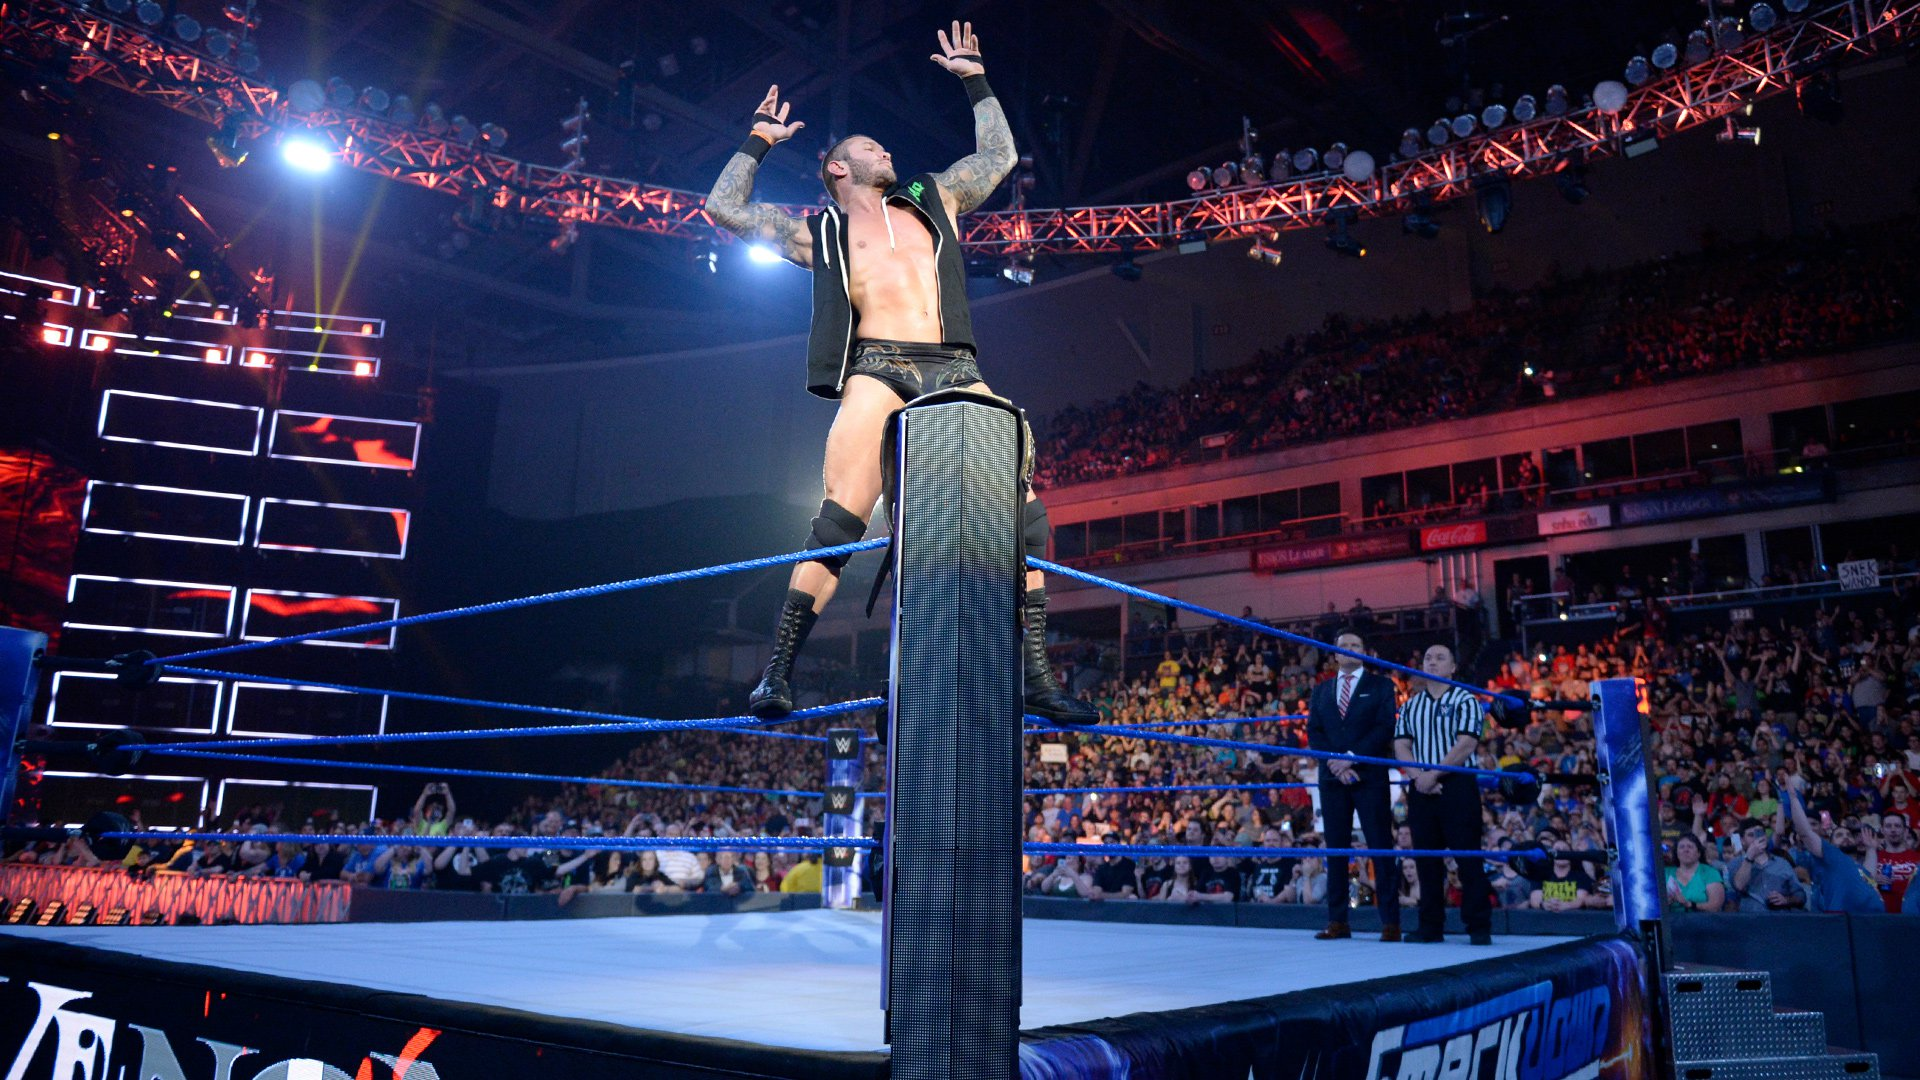 WWE Champion Randy Orton strikes his trademark pose prior to the start of his match against Baron Corbin.